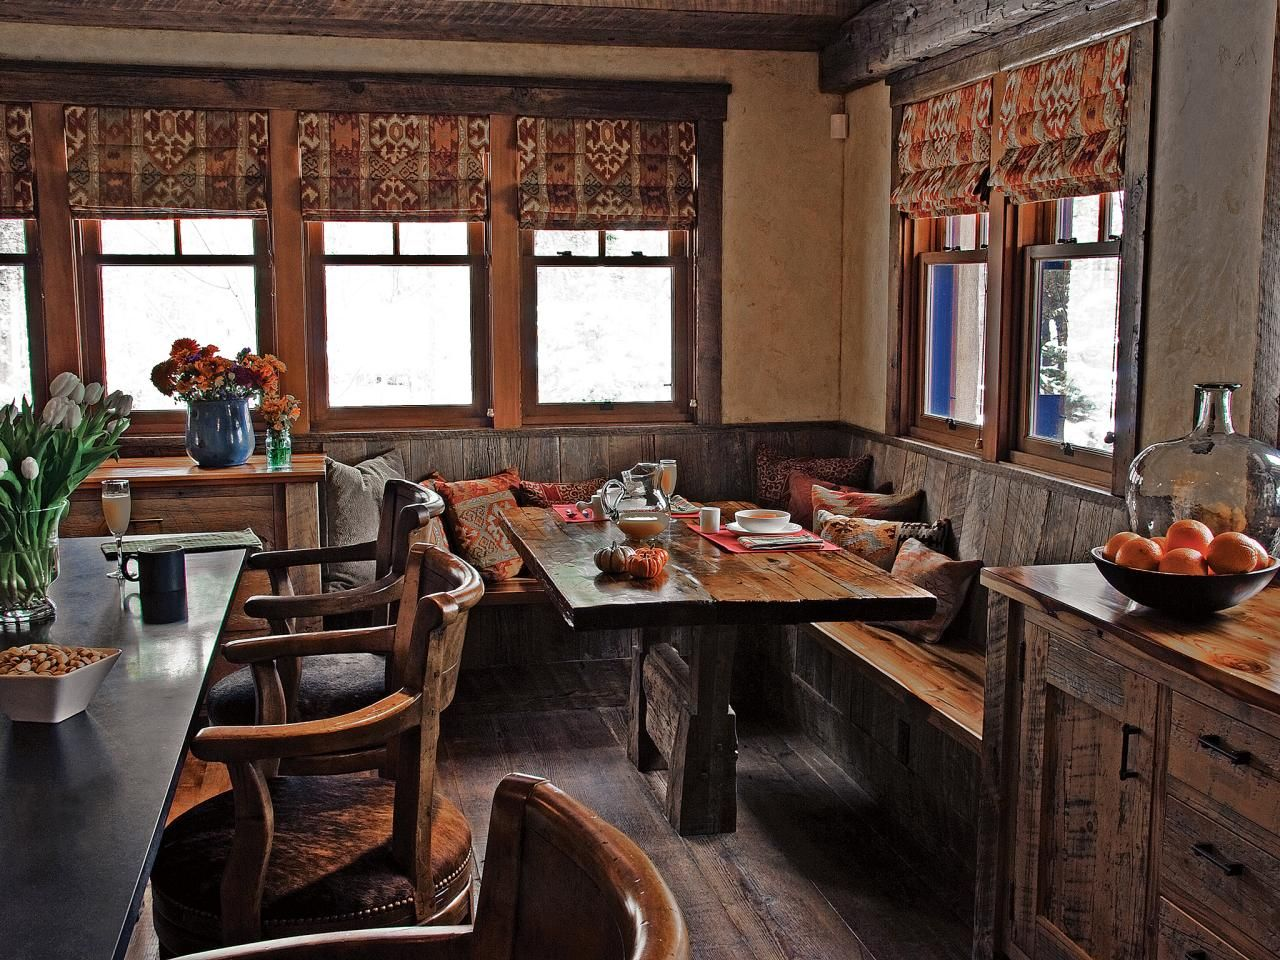 Rustic Kitchen With Reclaimed Banquette Seating Banquette Seating Rustic Kitchen Breakfast Nook